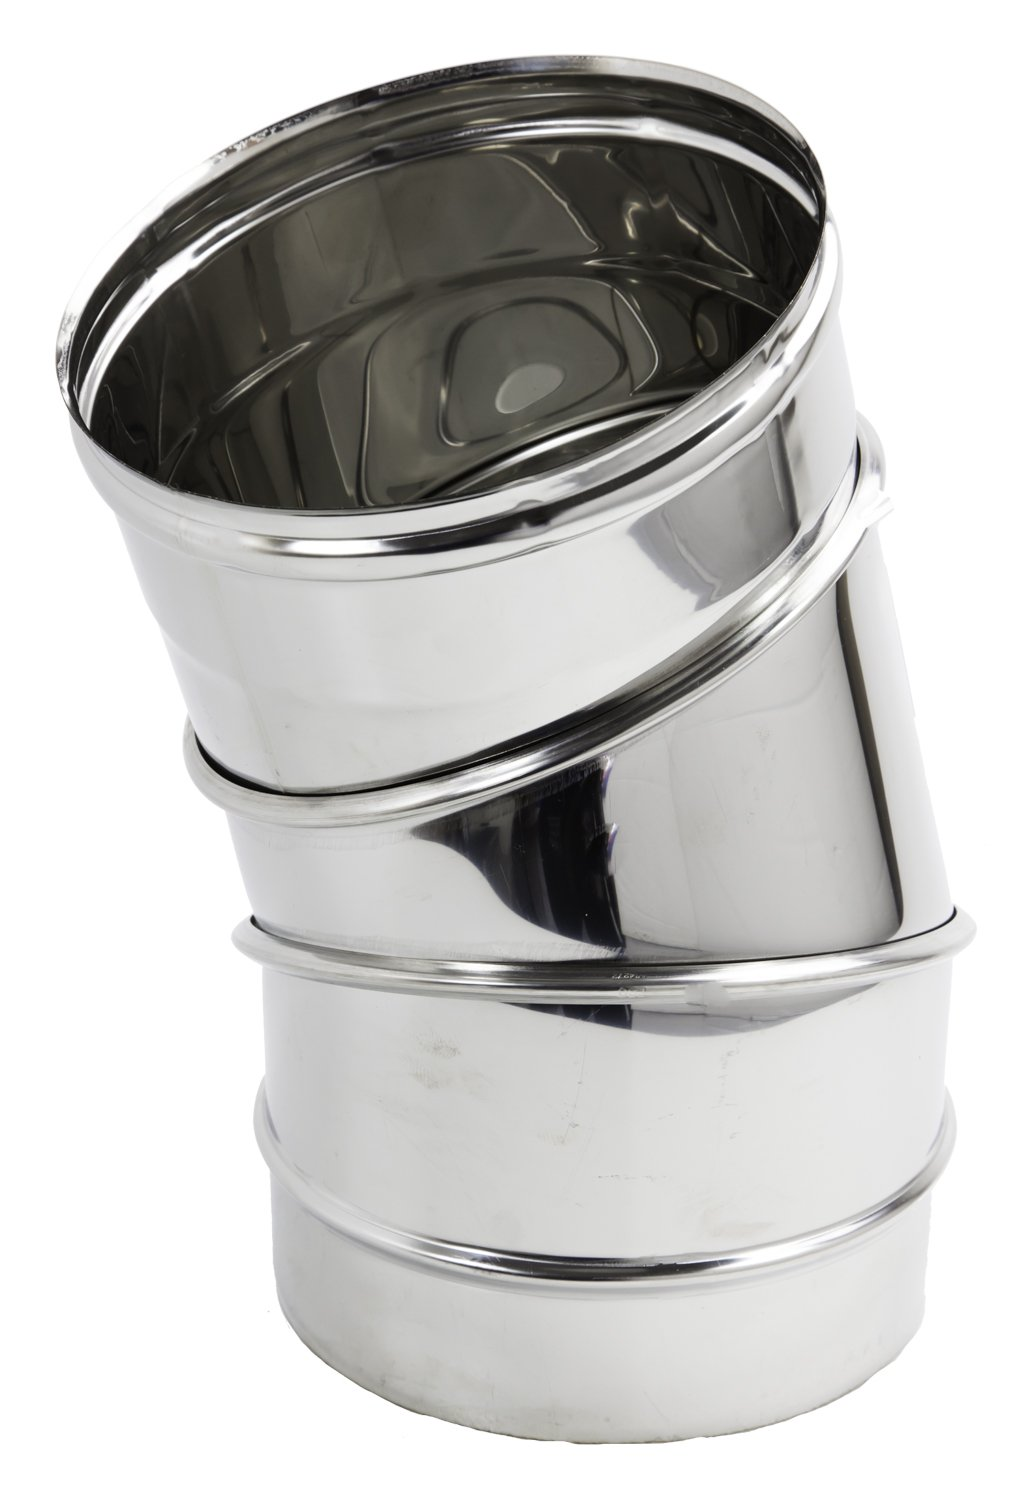 Stainless Steel Flue Pipe Elbow 15°